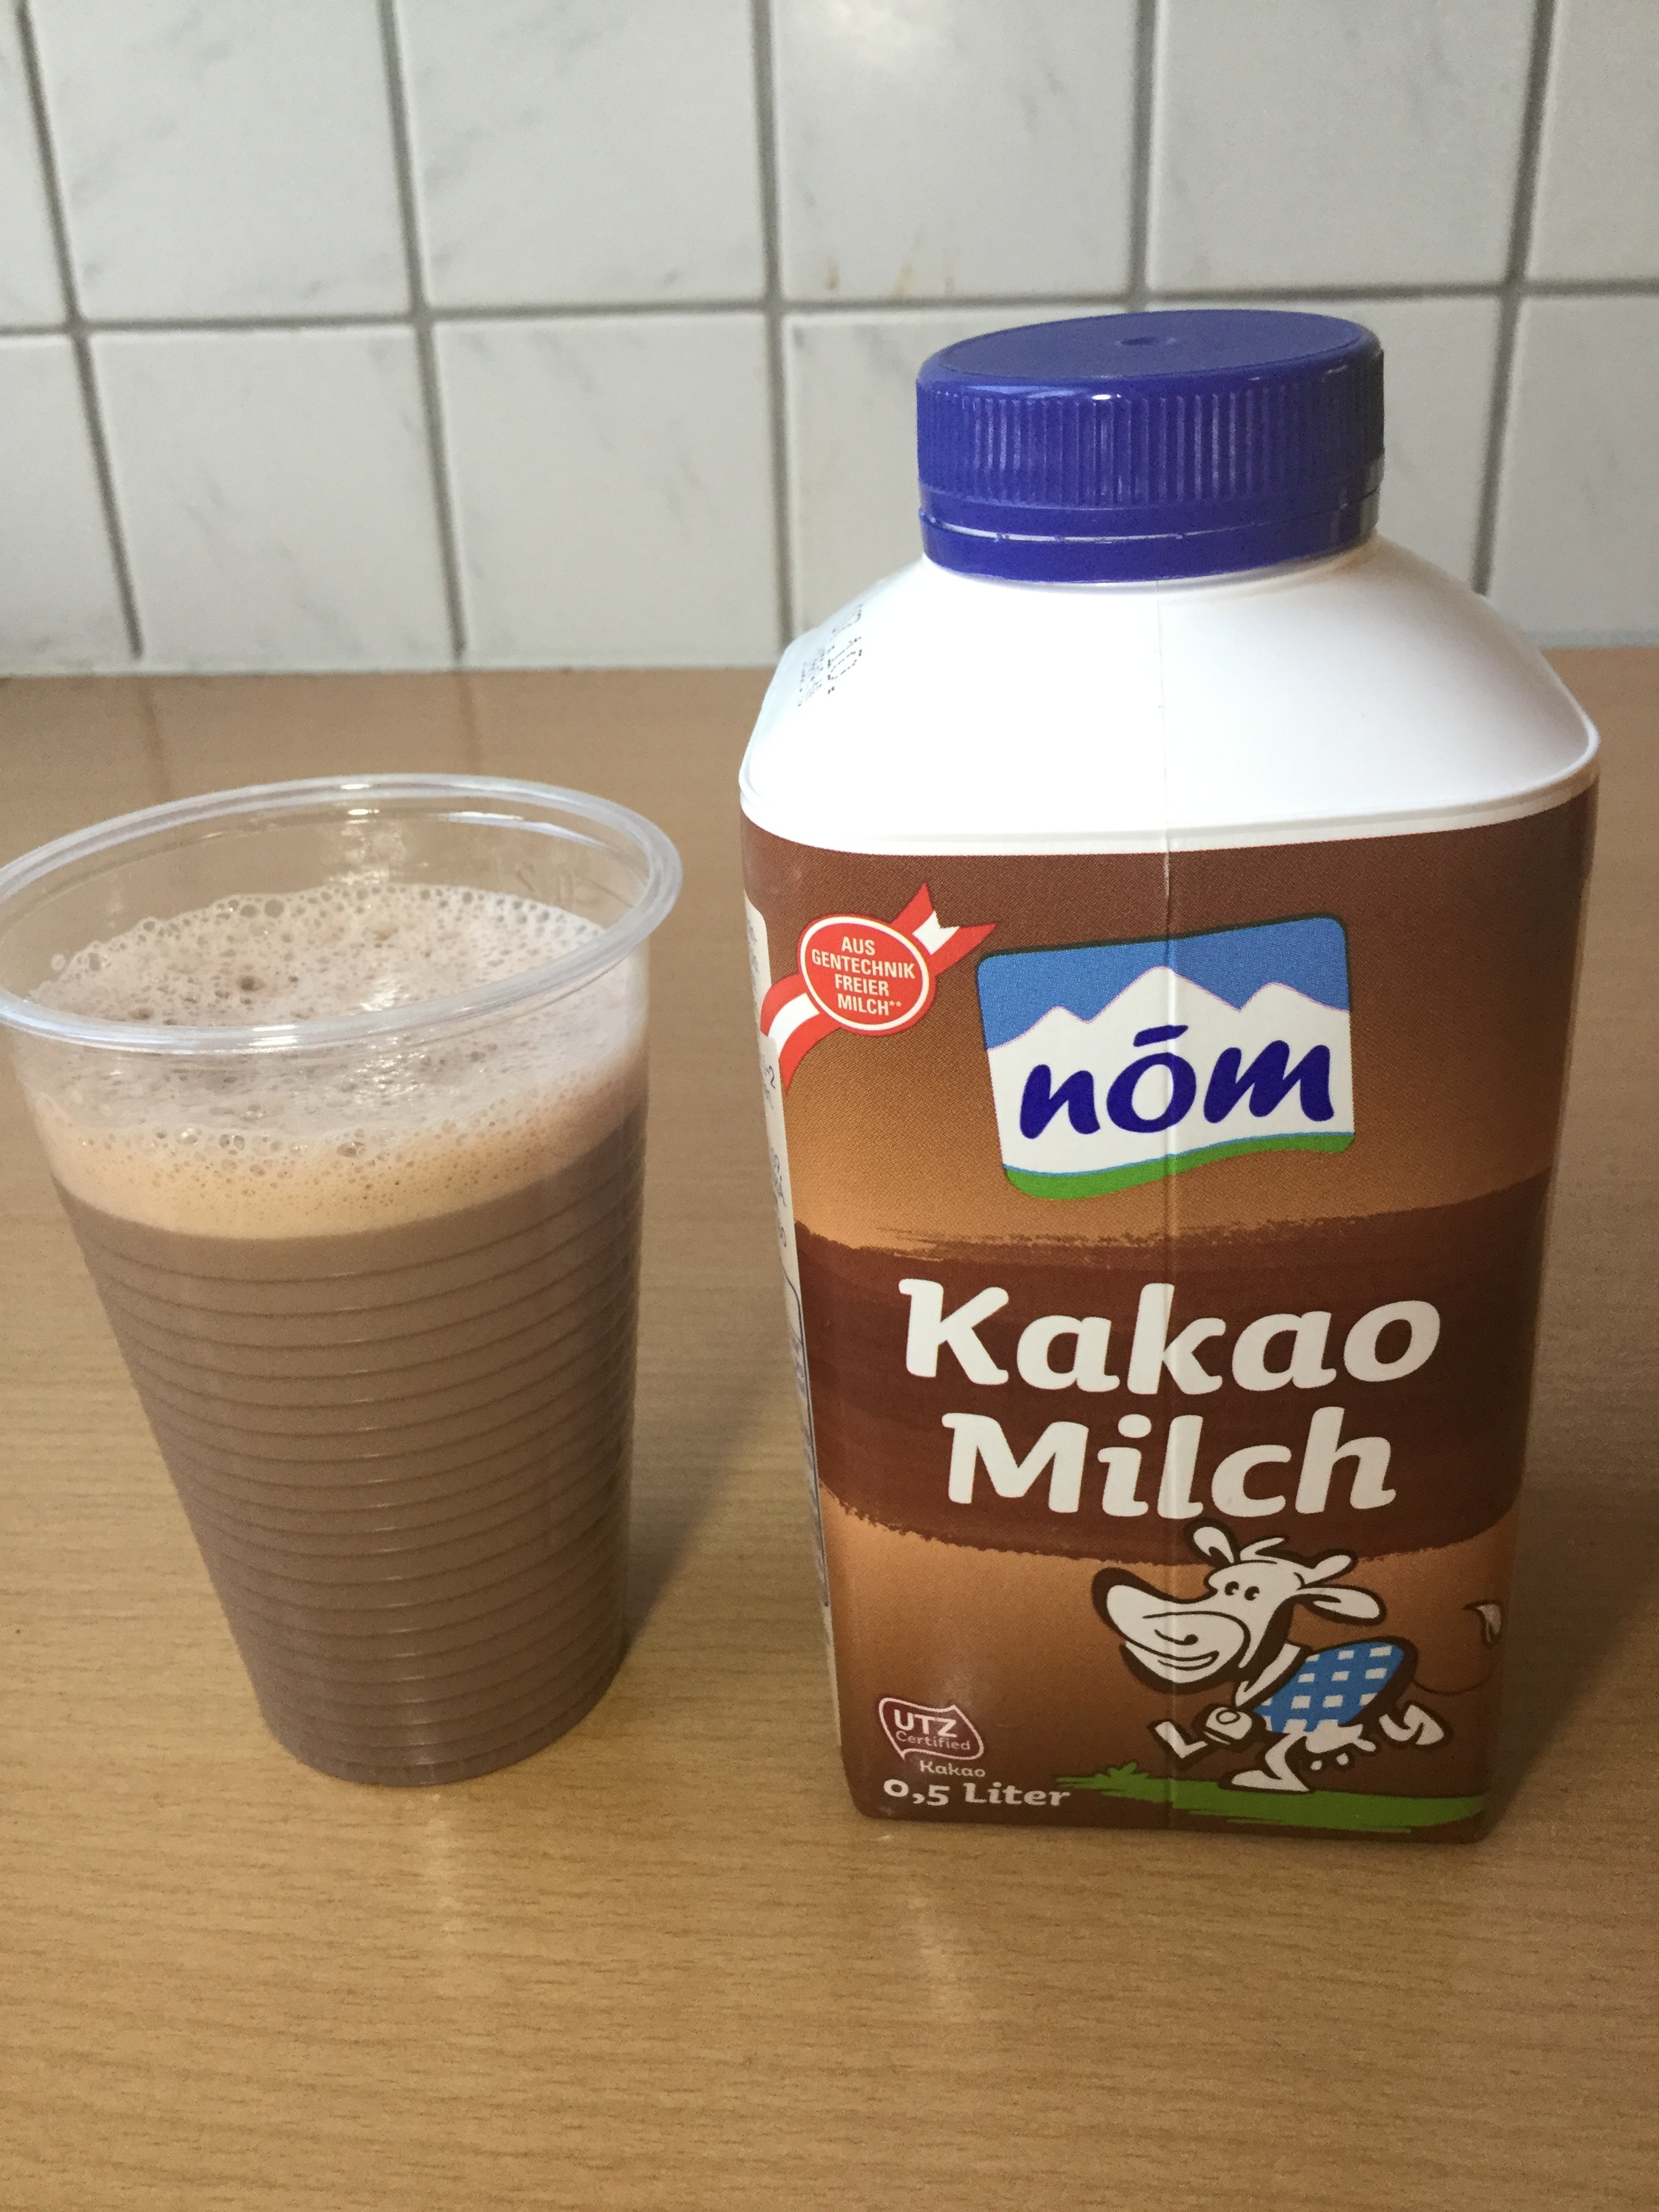 Nom Kakao Milch Cup